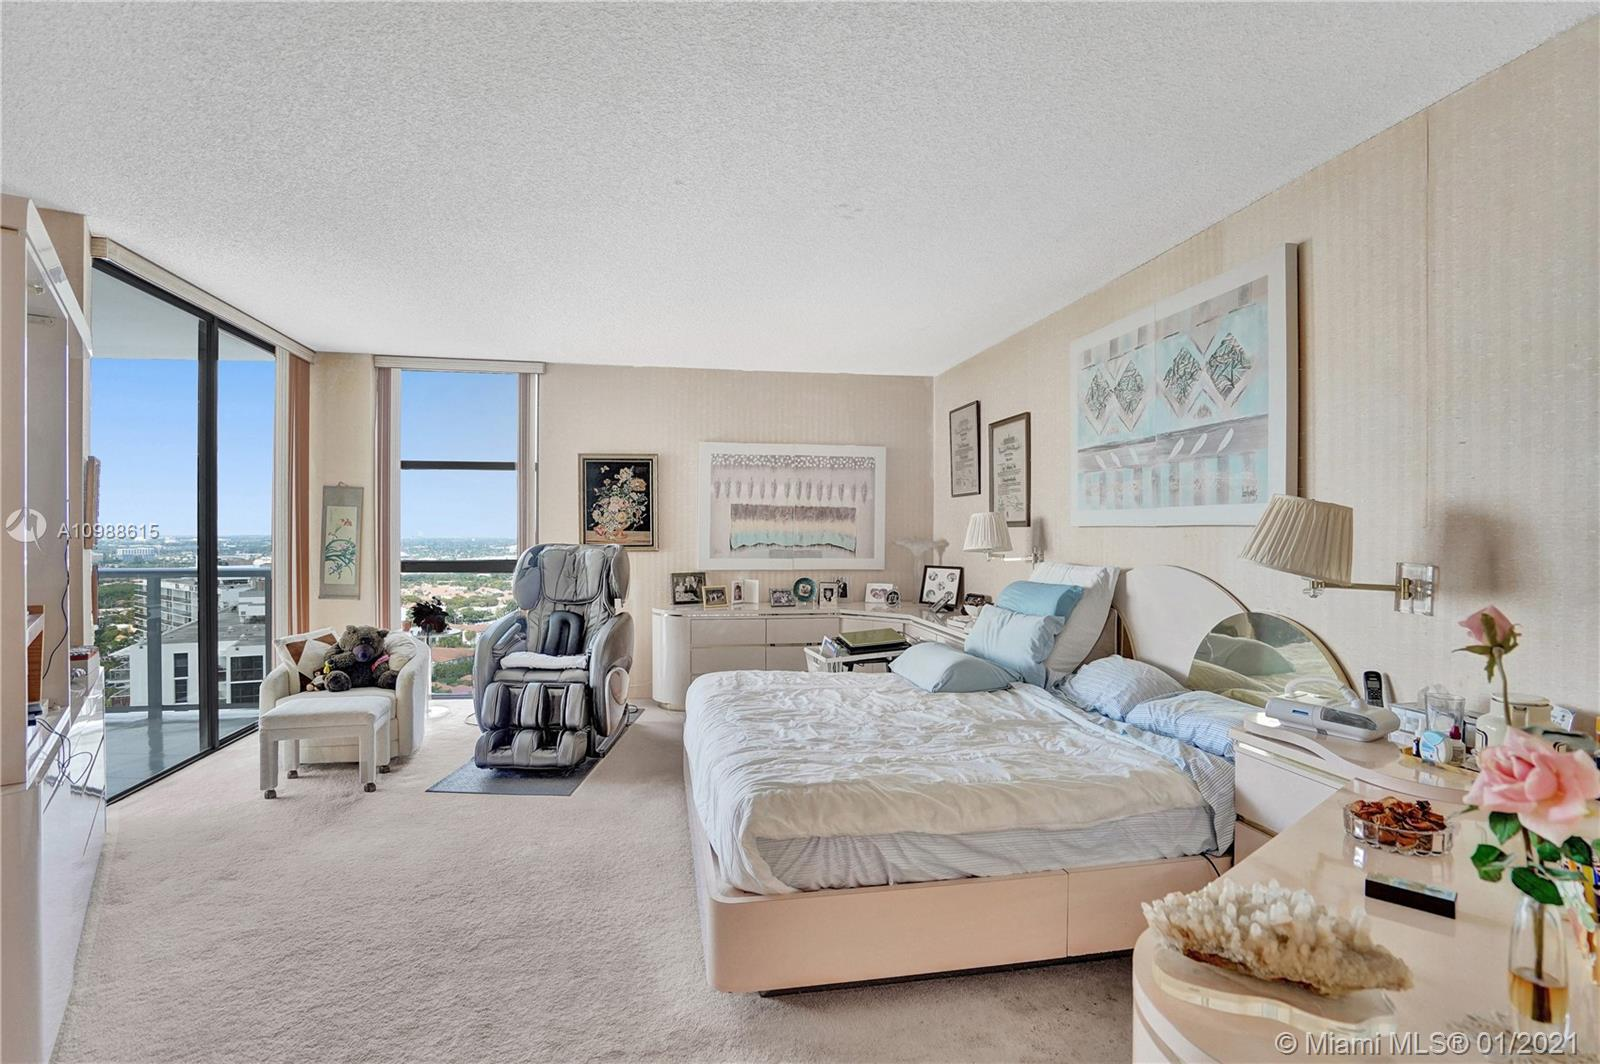 Photo of 20281 Country Club Dr #2407, Aventura, Florida, 33180 - Very spacious master bedroom with a large walk-in closet.